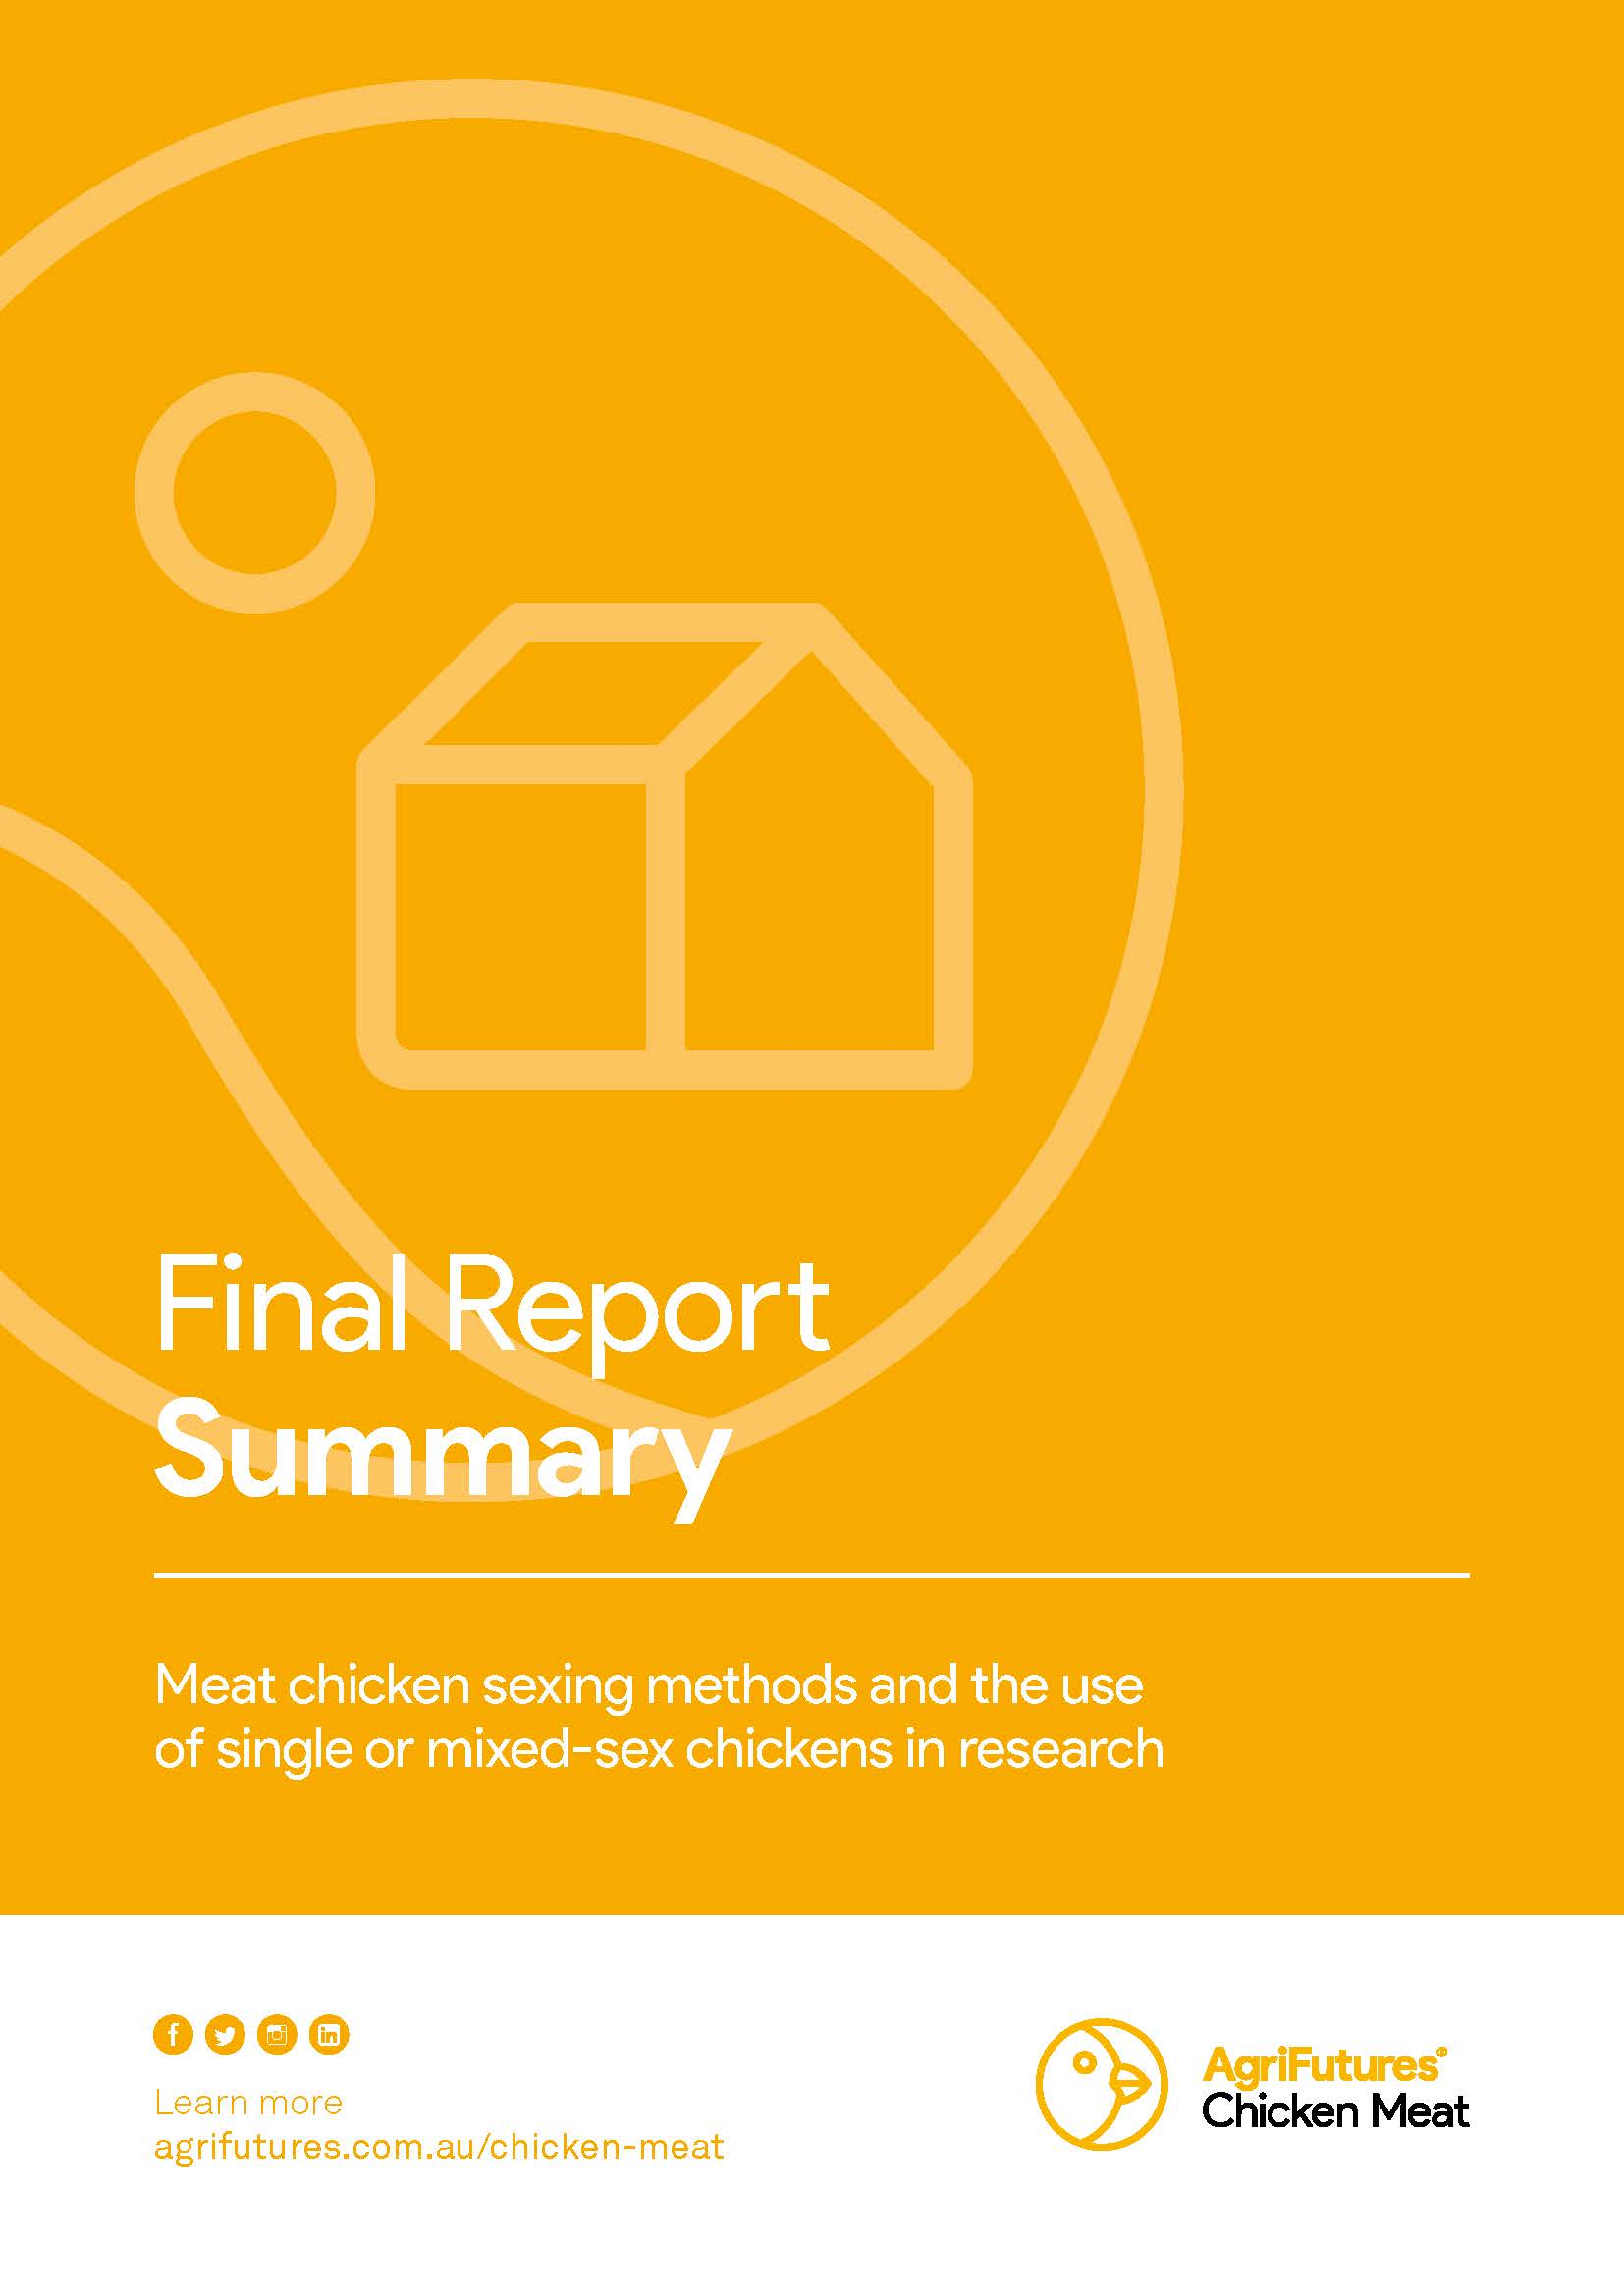 Final report summary: Meat chicken sexing methods and the use of single or mixed-sex chickens in research - image